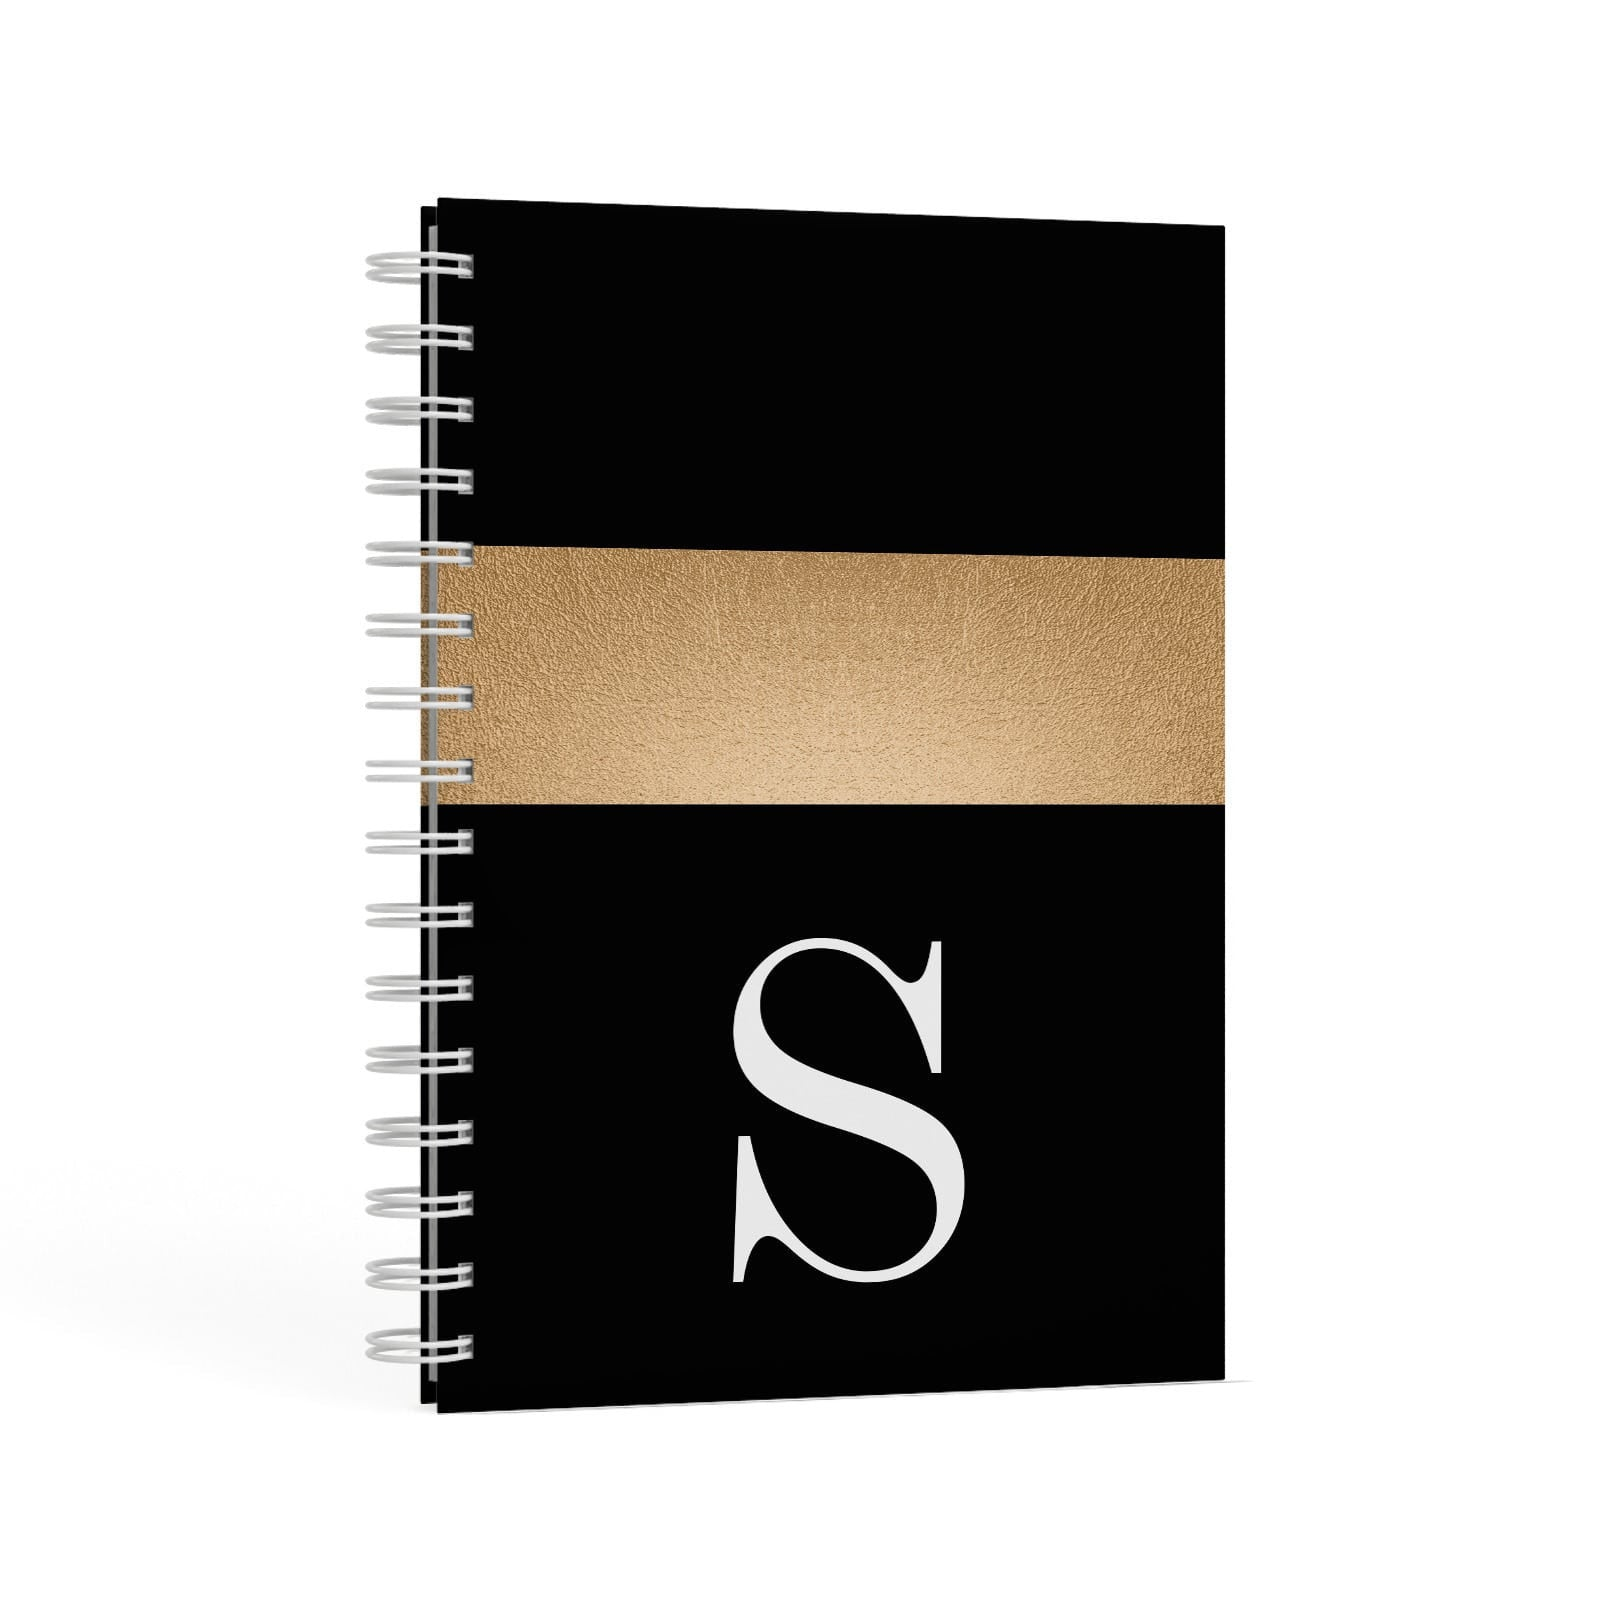 Personalised Black & Gold Monogram Initial A5 Hardcover Notebook Second Side View